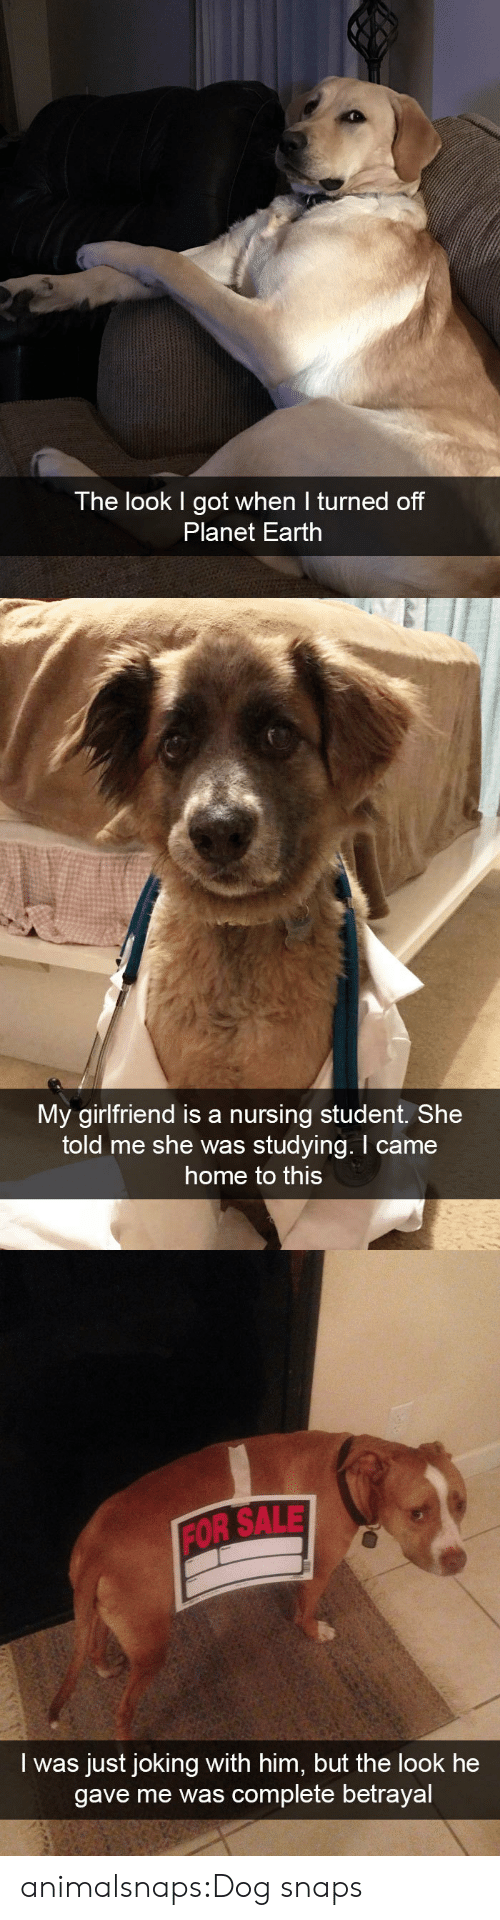 Target, Tumblr, and Blog: The look I got when I turned off  Planet Earth   My girlfriend is a nursing student. She  told me she was studying. I came  home to this   FOR SALE  I was just joking with him, but the look he  gave me was complete betrayal animalsnaps:Dog snaps